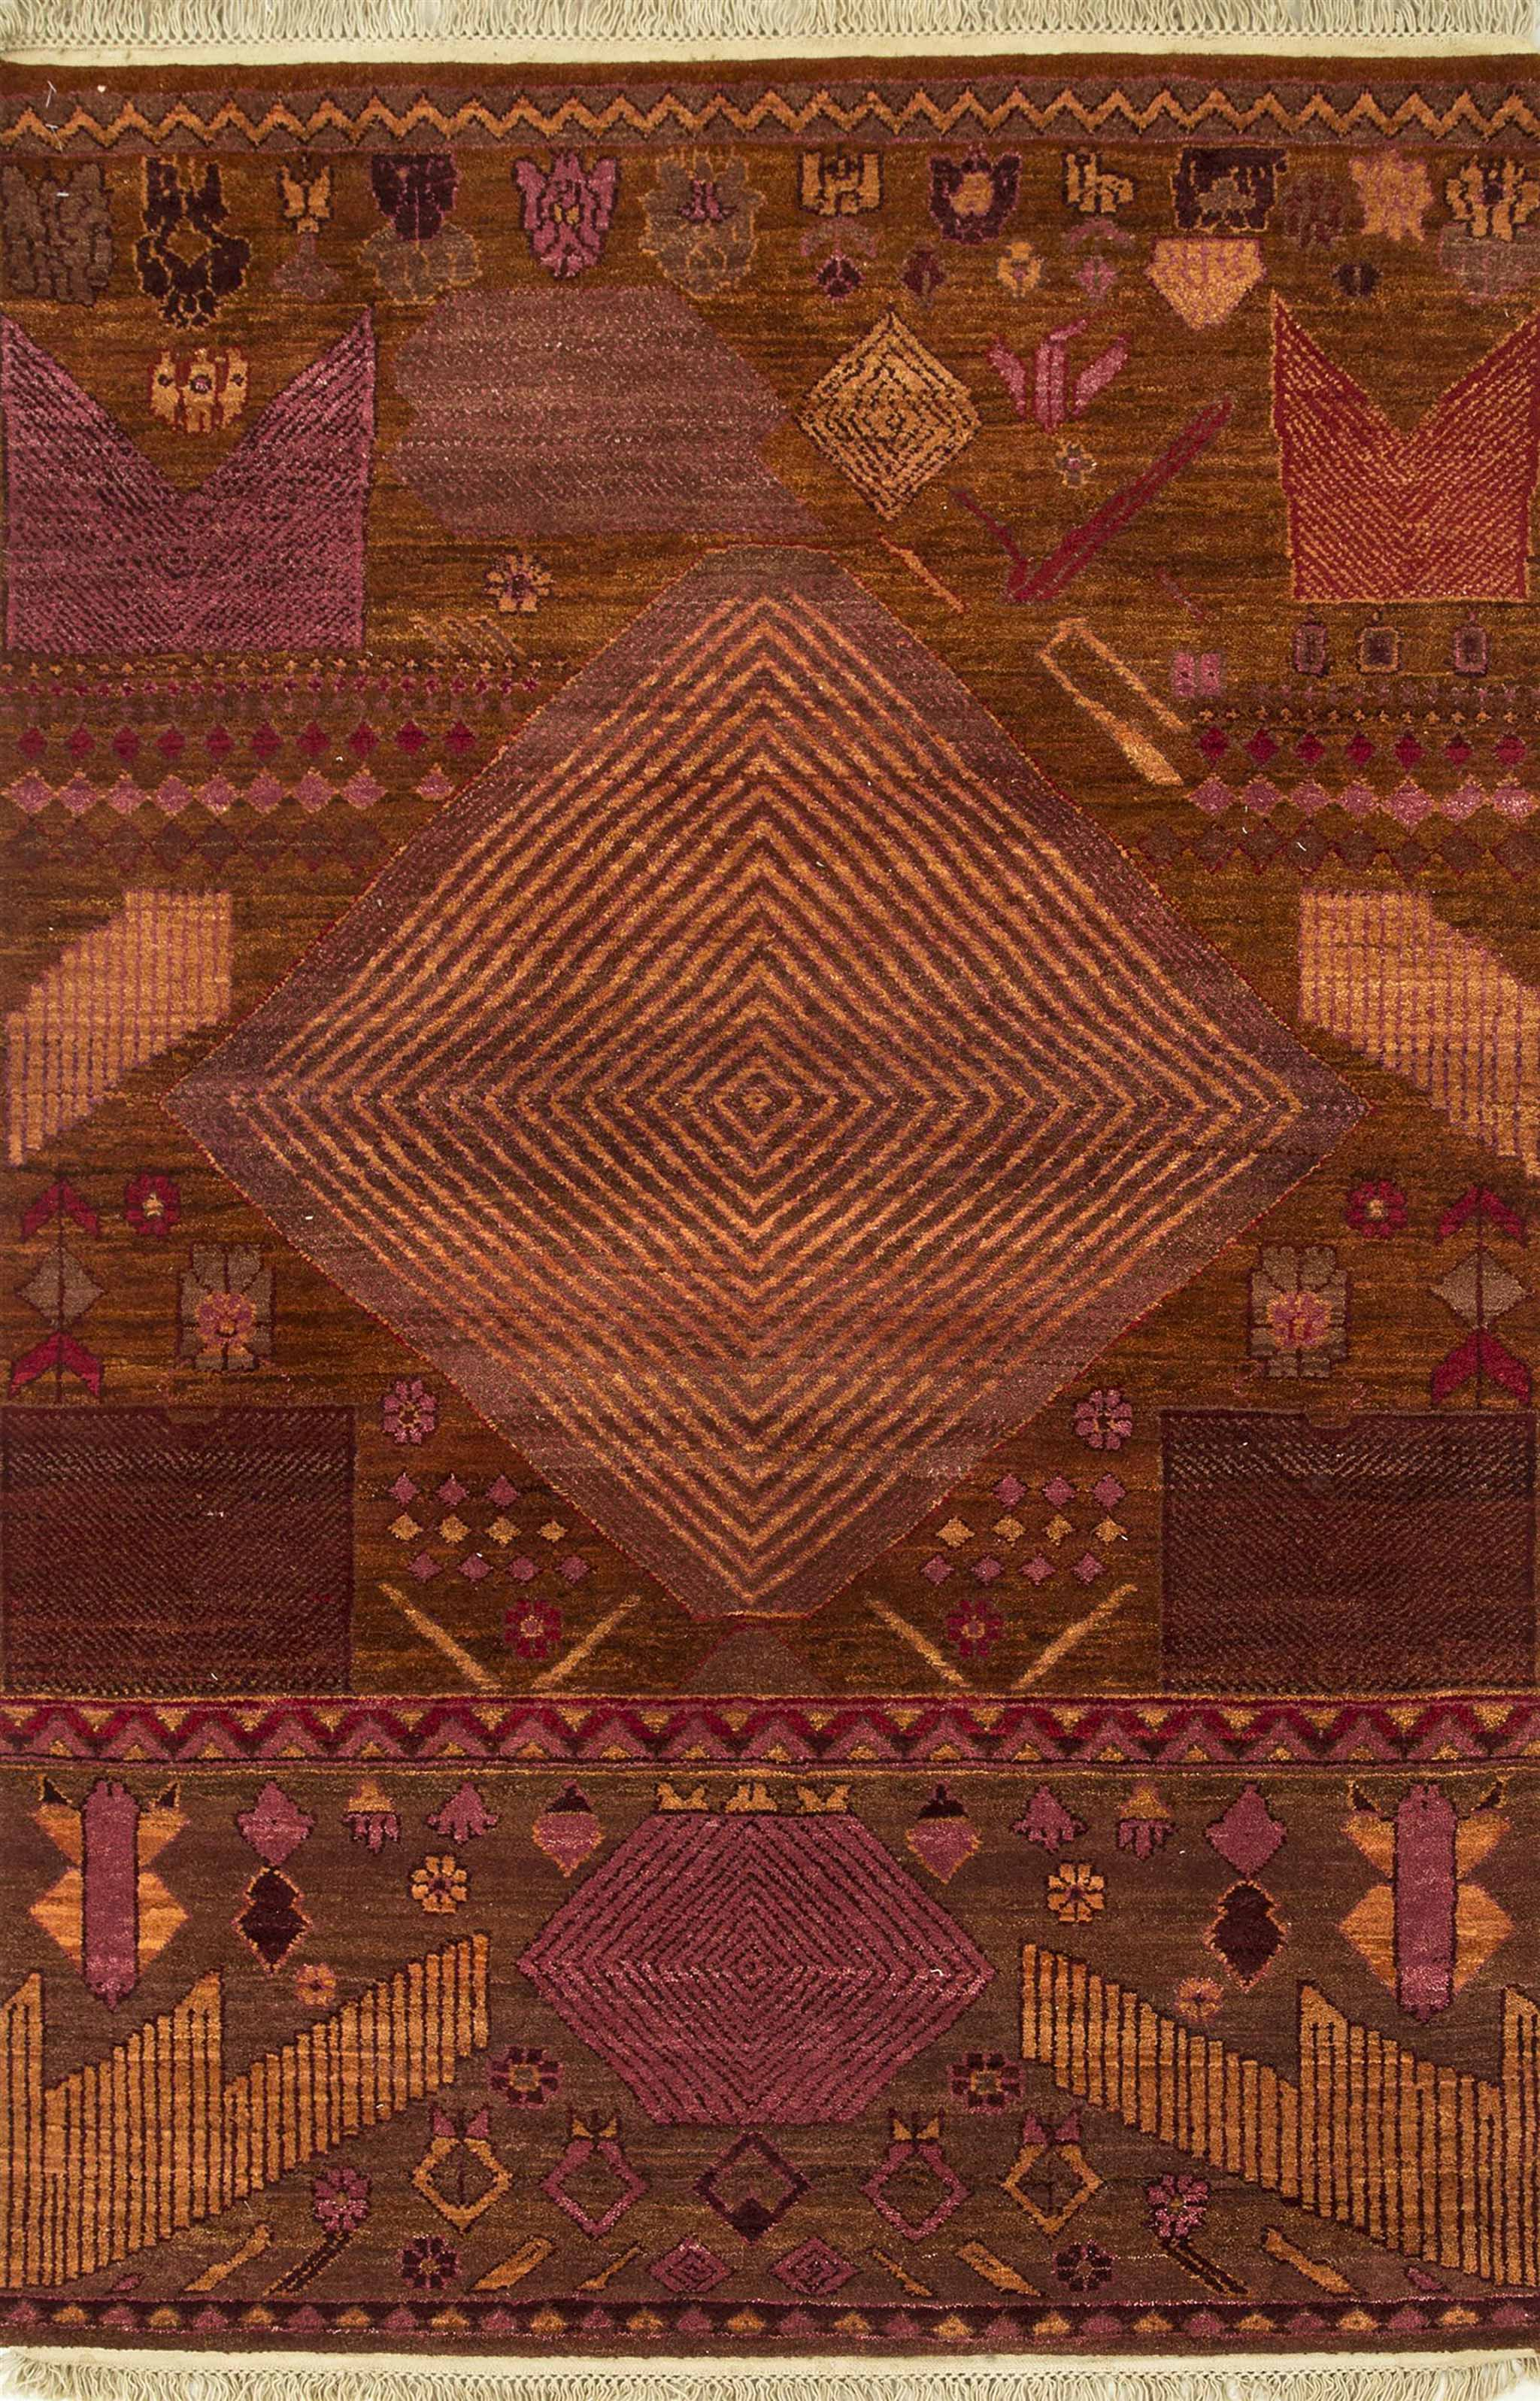 Un-Official Finalist, Best Traditional Design: Kamal from Artisan Originals, Jaipur Rugs - www.jaipurrugsco.com | Image courtesy of Jaipur Rugs/Domotex.